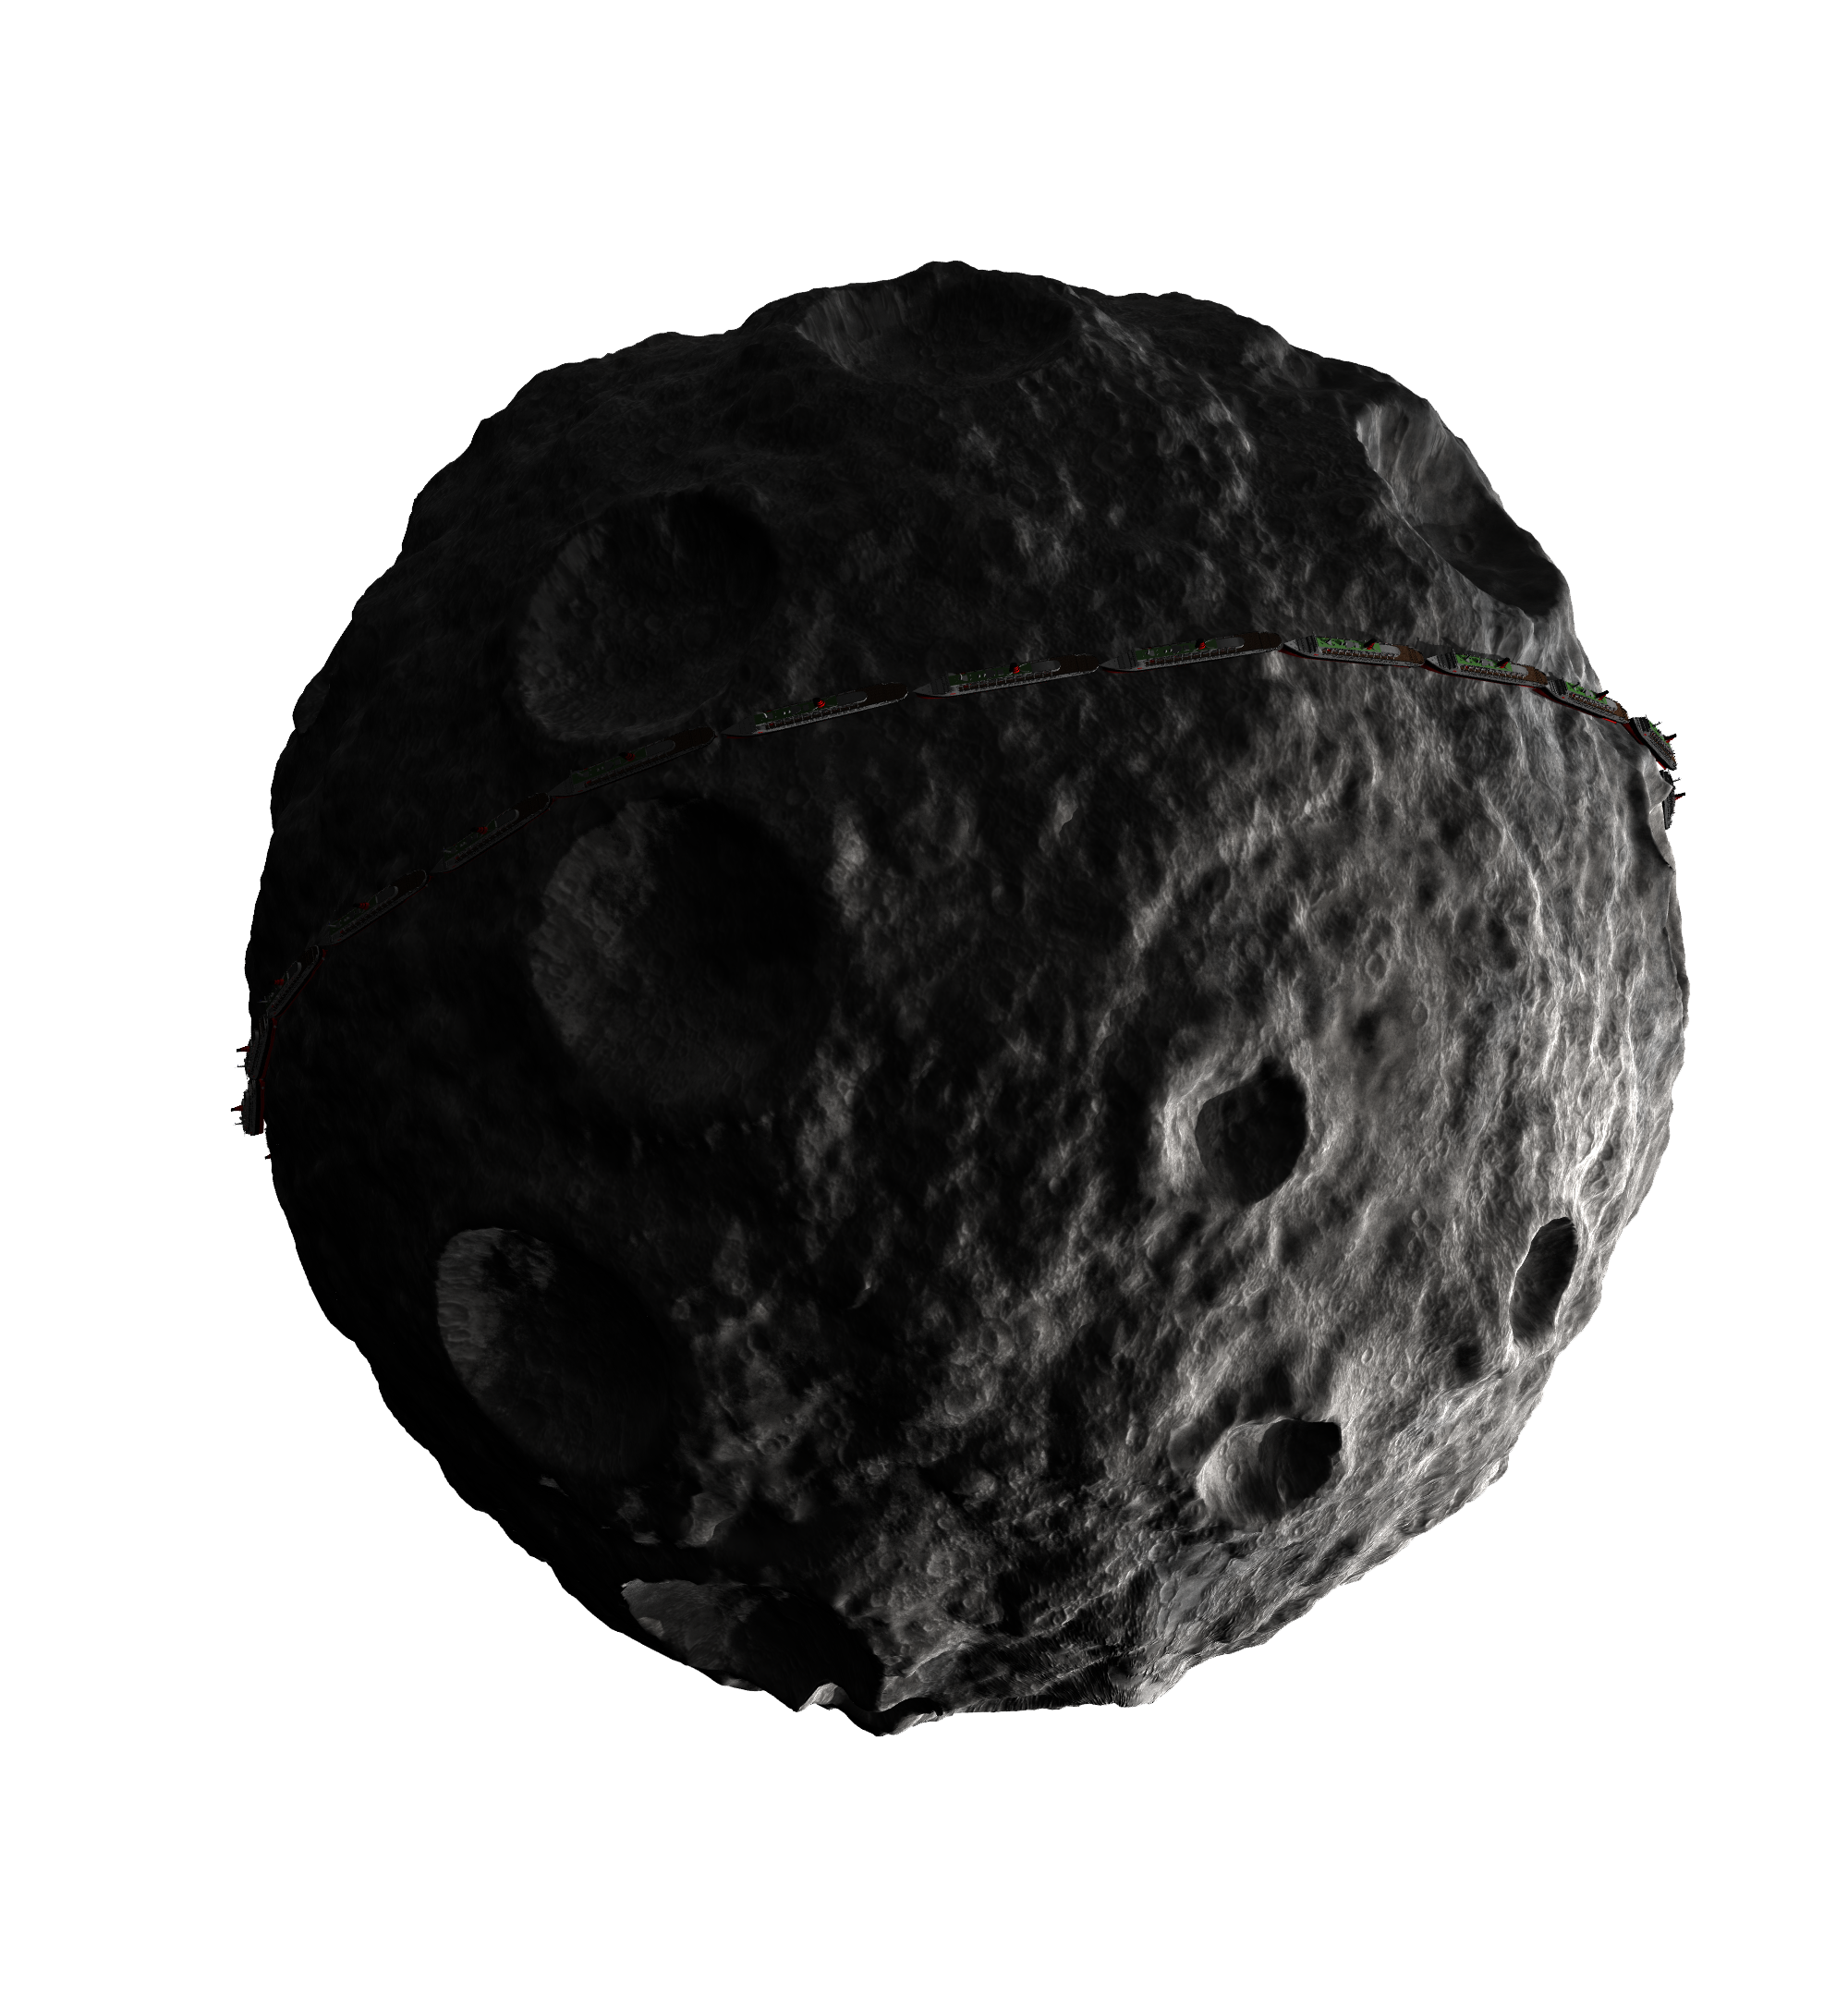 Png images free download. Asteroid clipart transparent background